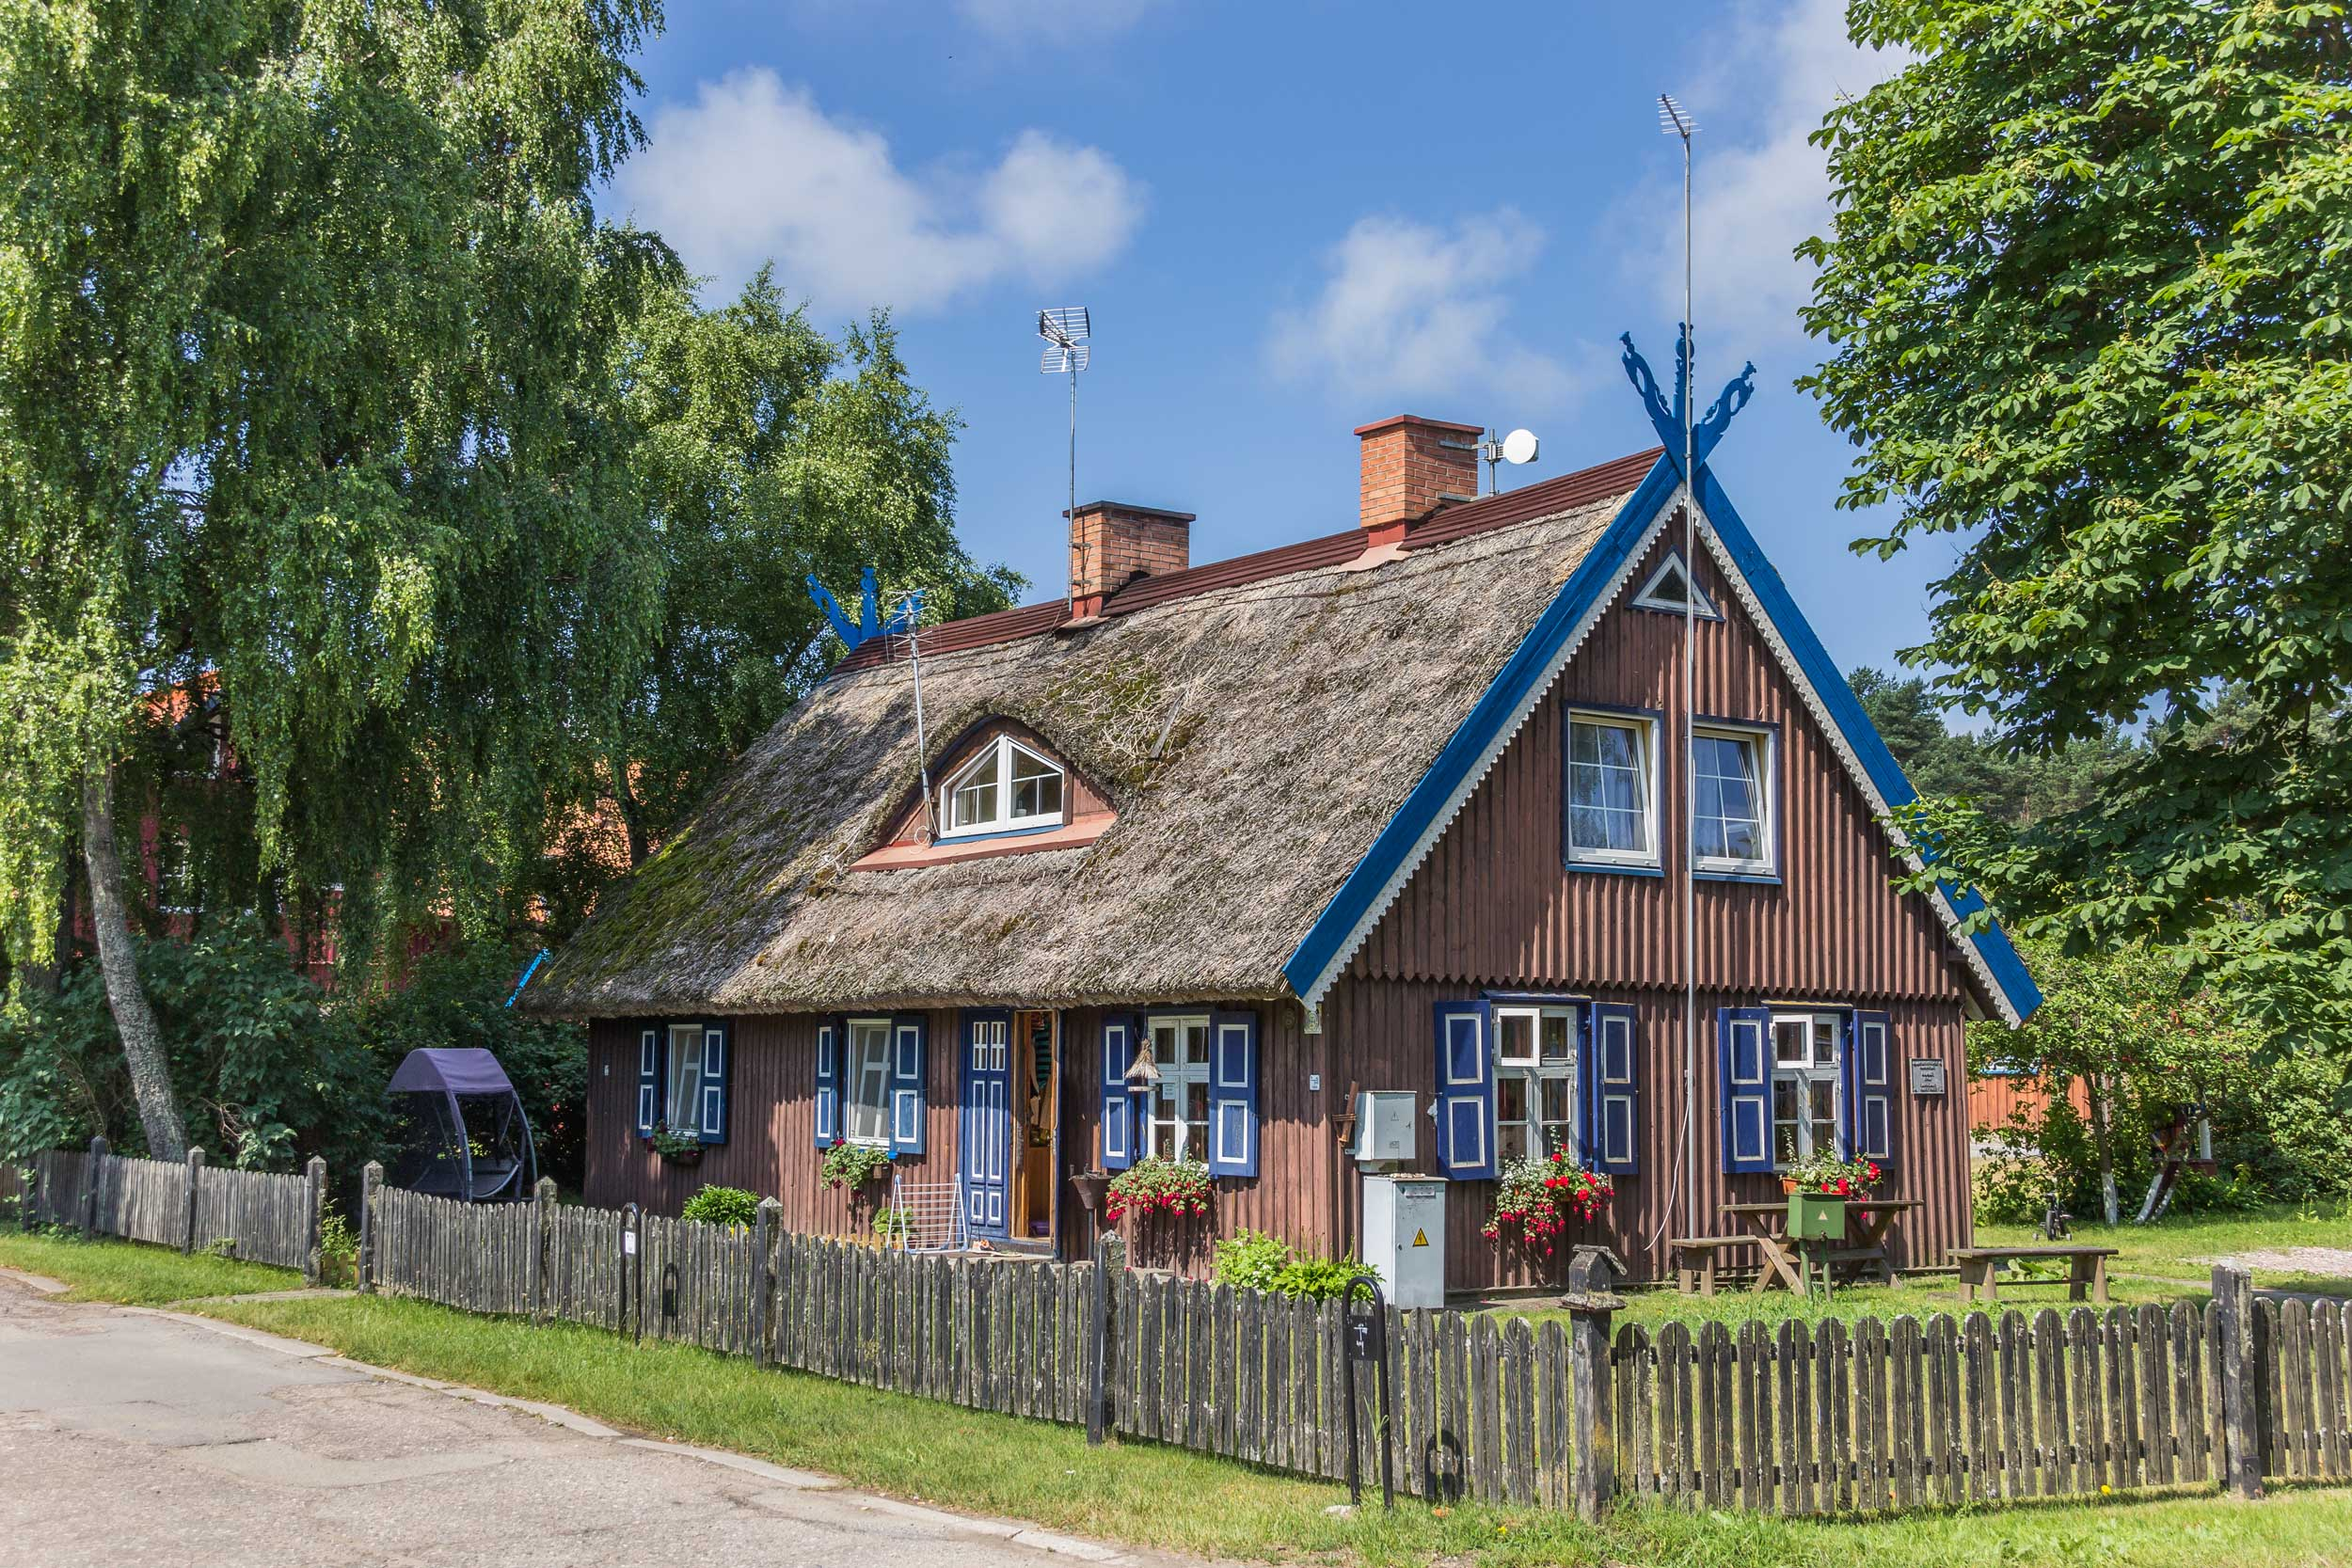 A traditional wooden thatched fisherman's house in Nida, Lithuania